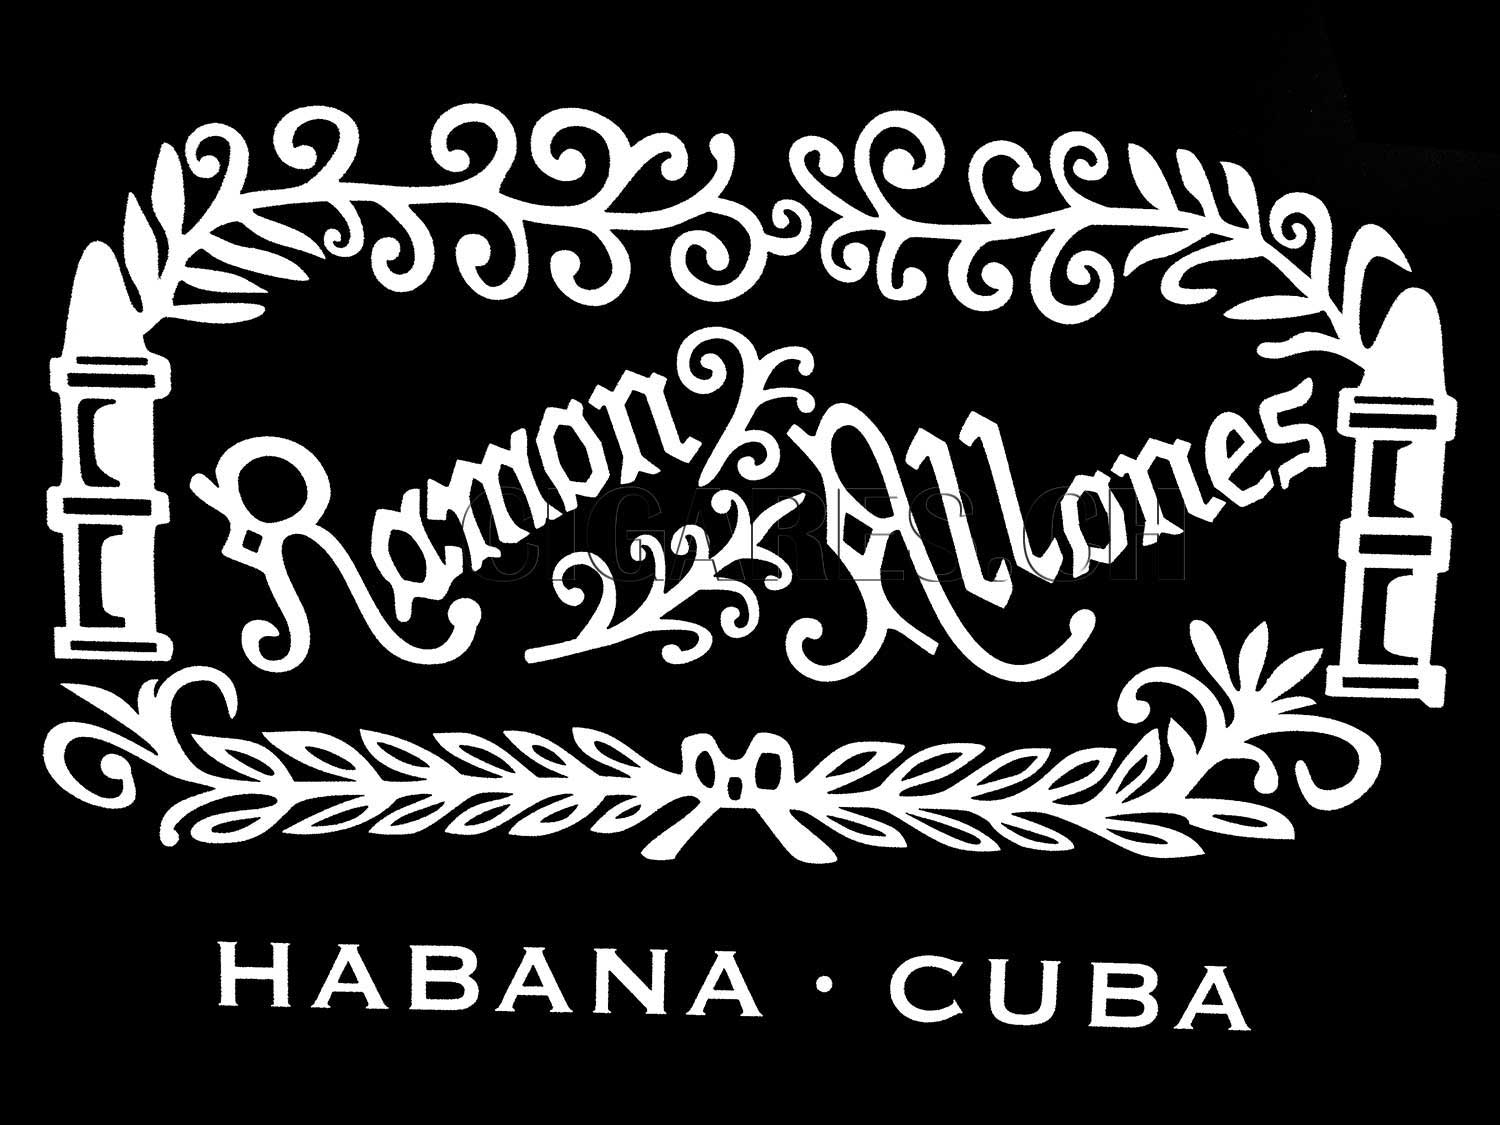 Cigares ramon Allones logo